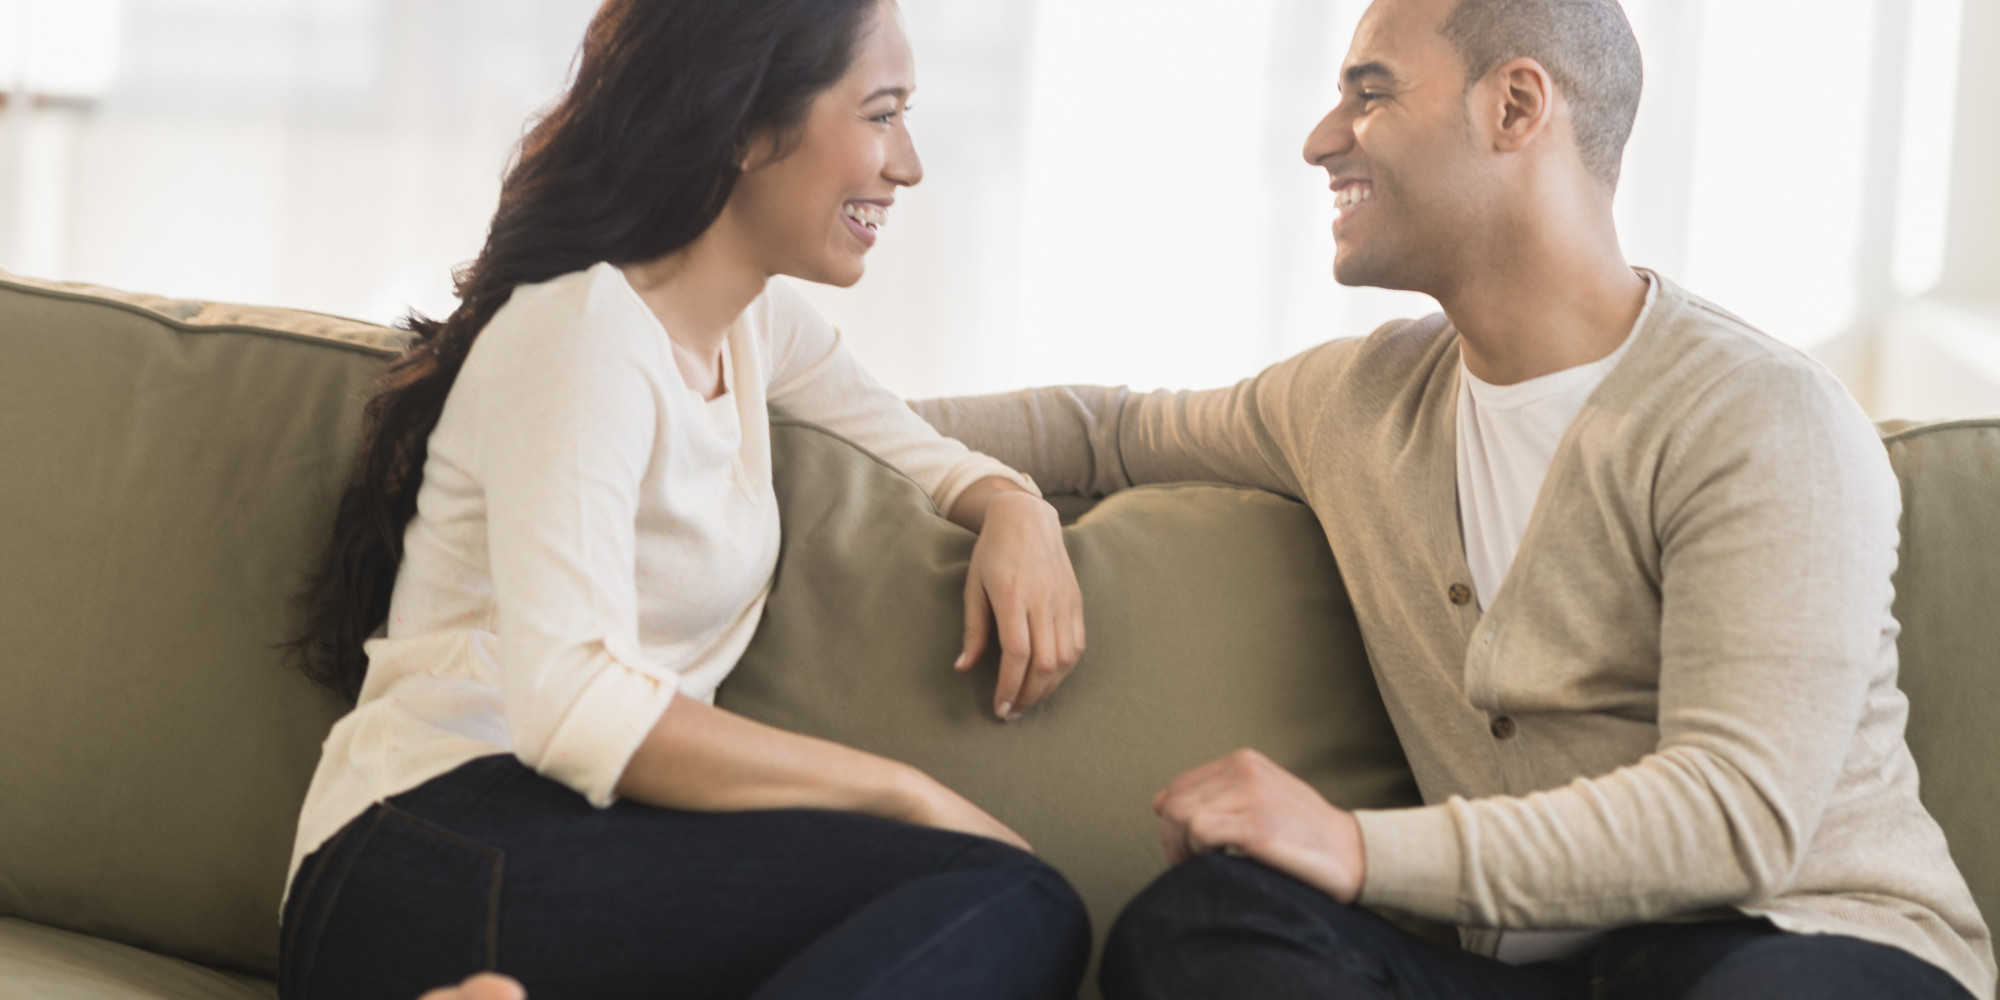 conversano christian dating site Dating site for christian singles - visit the most popular and simplest online dating site to flirt, chart, or date with interesting people online, sign up for free.